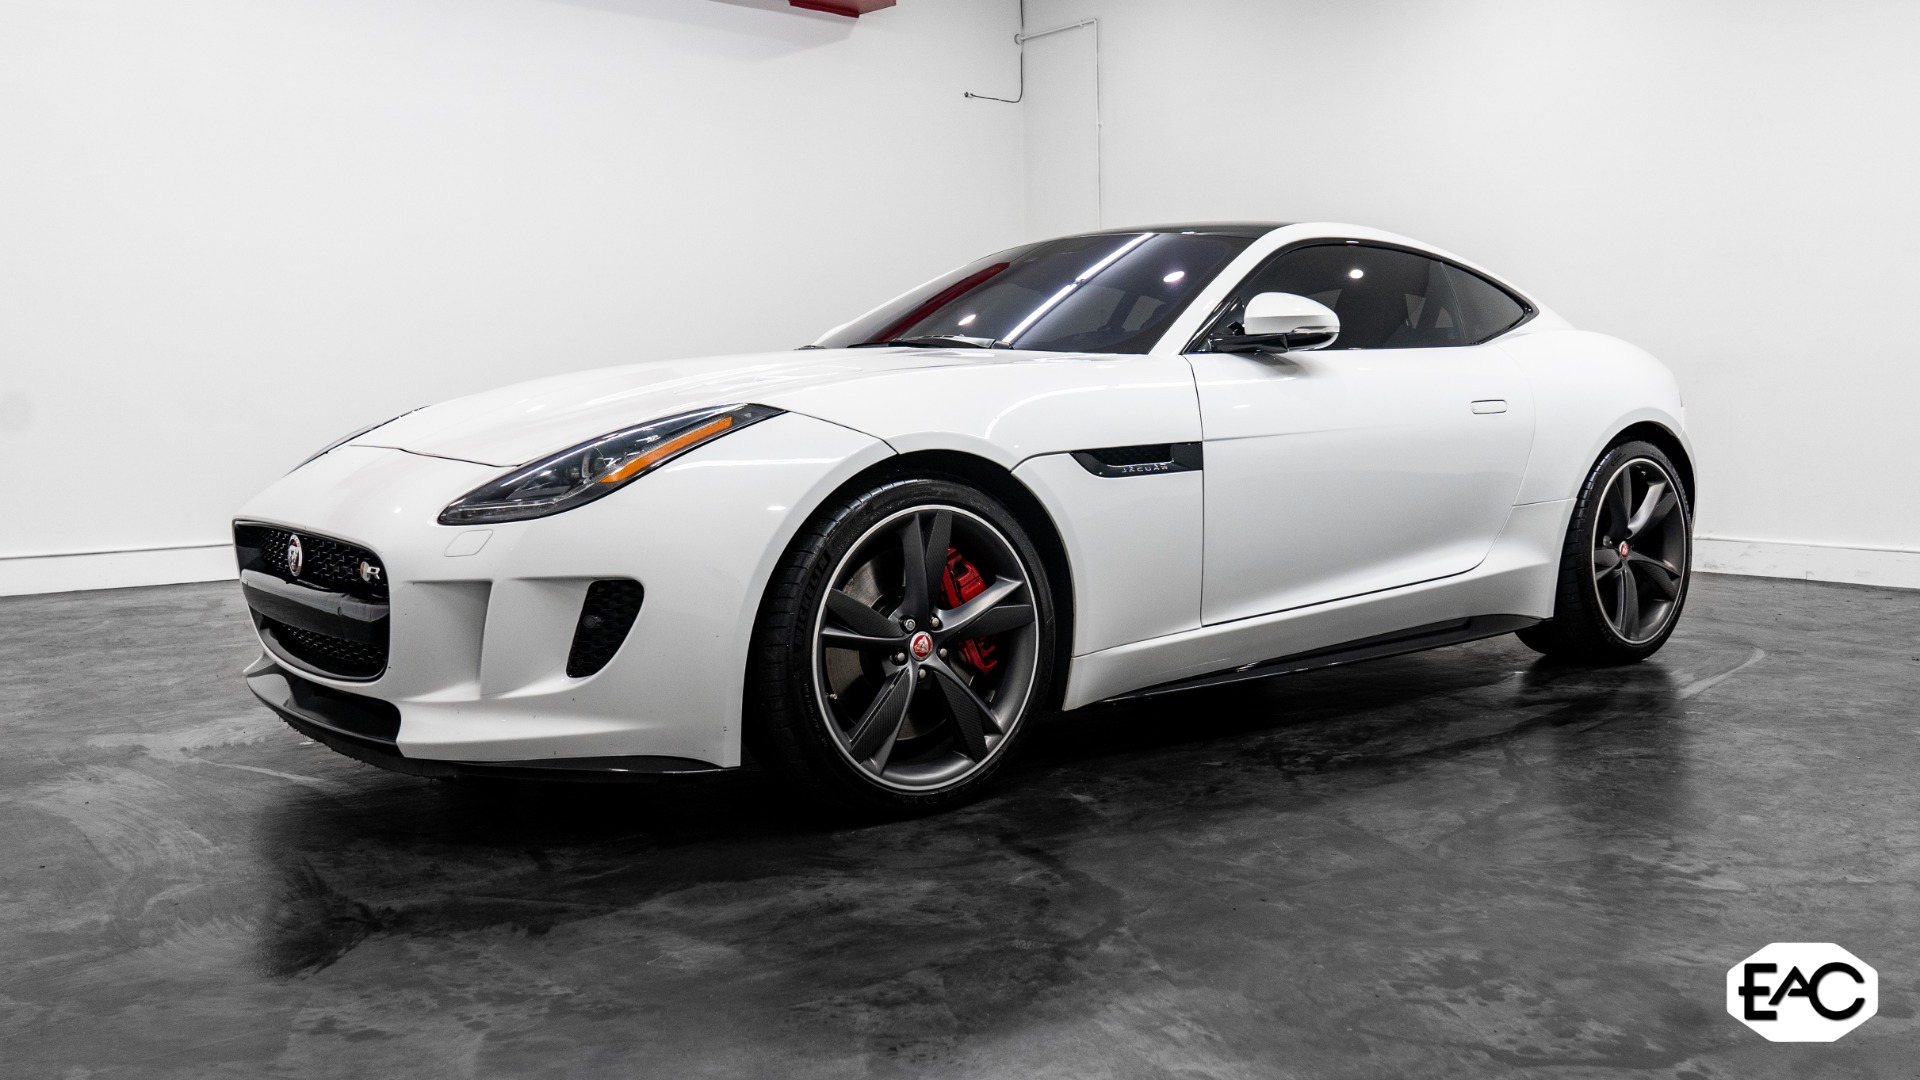 Used 2017 Jaguar F-TYPE R for sale $57,490 at Empire Auto Collection in Warren MI 48091 1